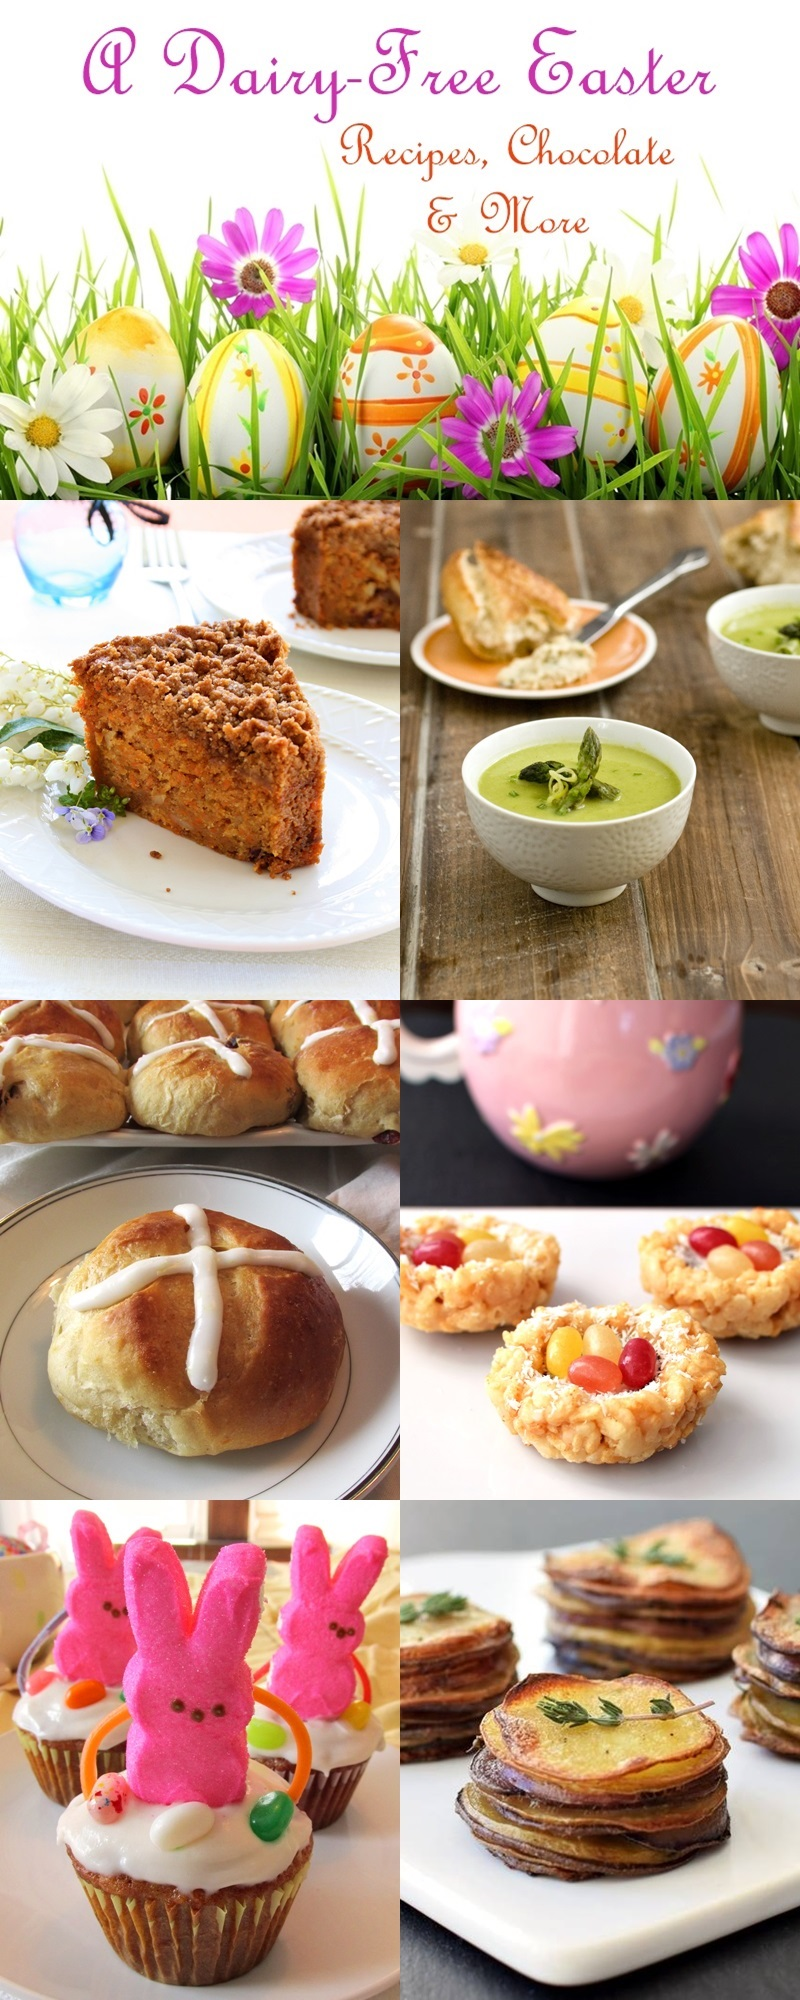 A Dairy-Free Easter: Recipes and More!